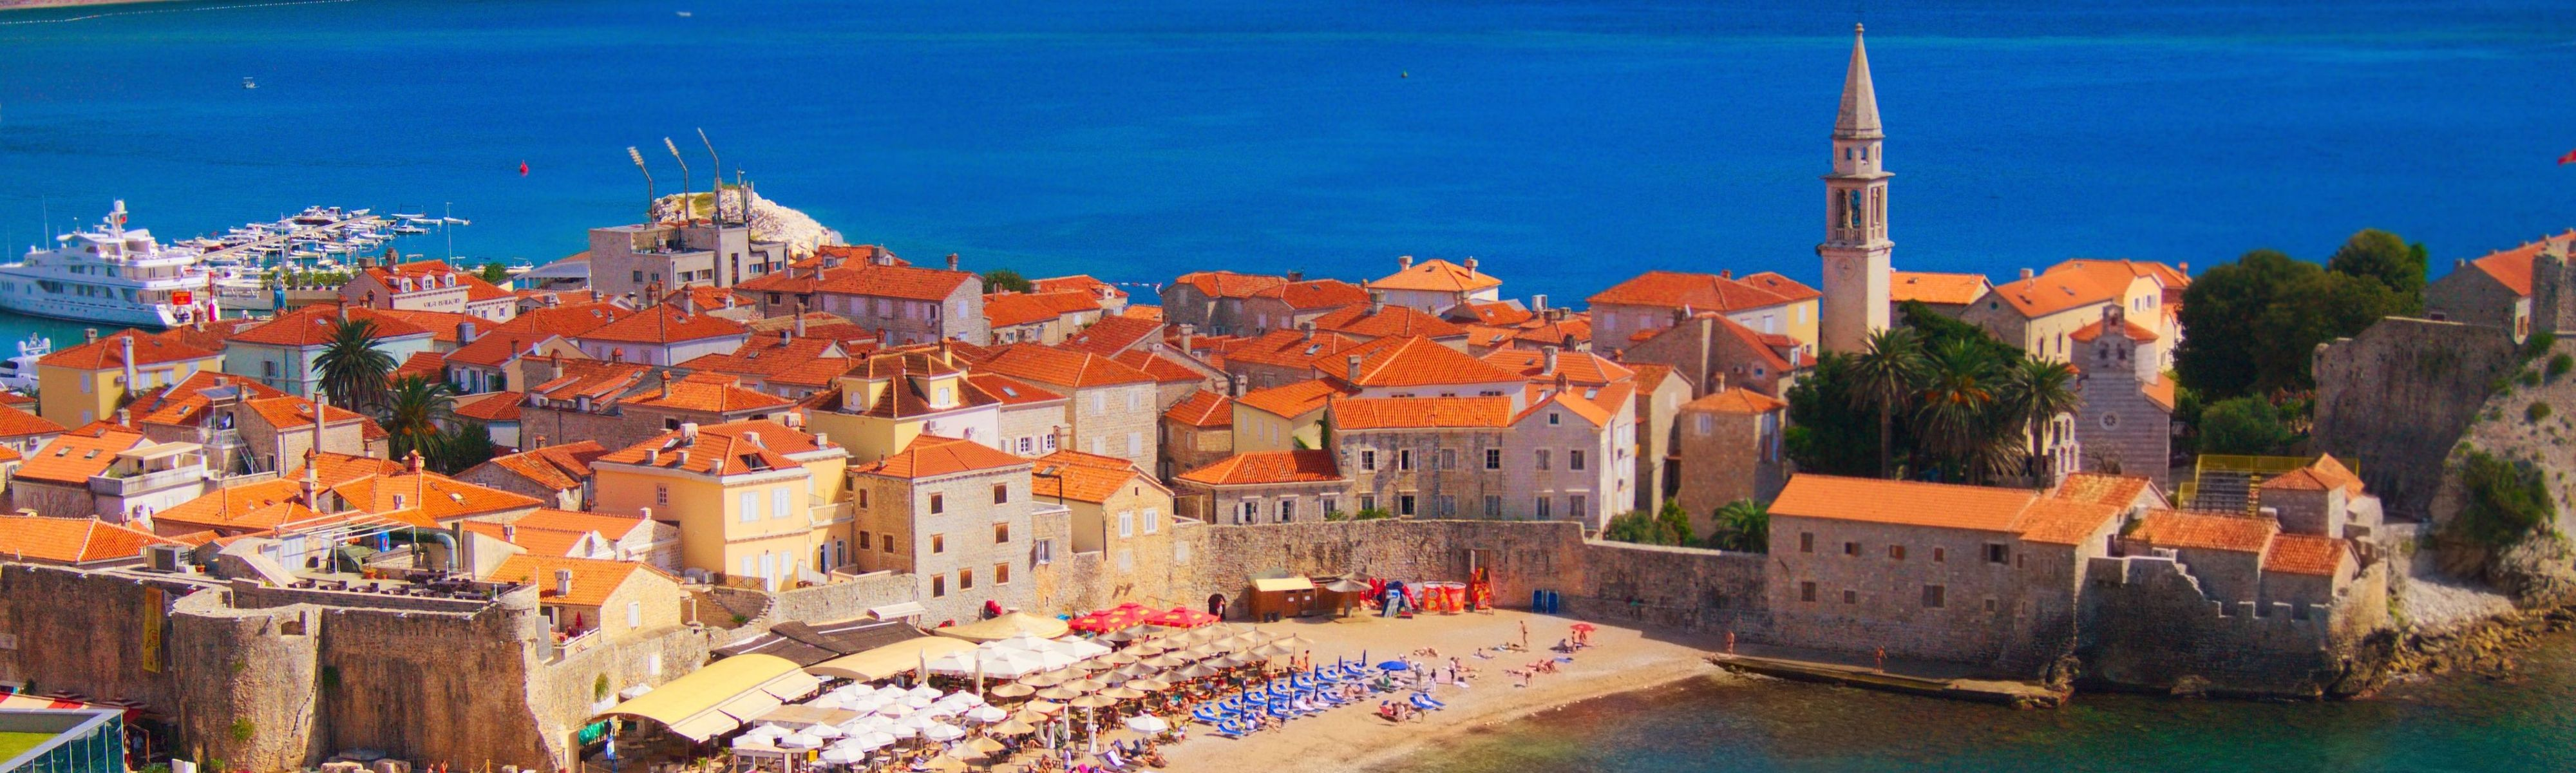 coastal old town in budva montenegro on a sunny day